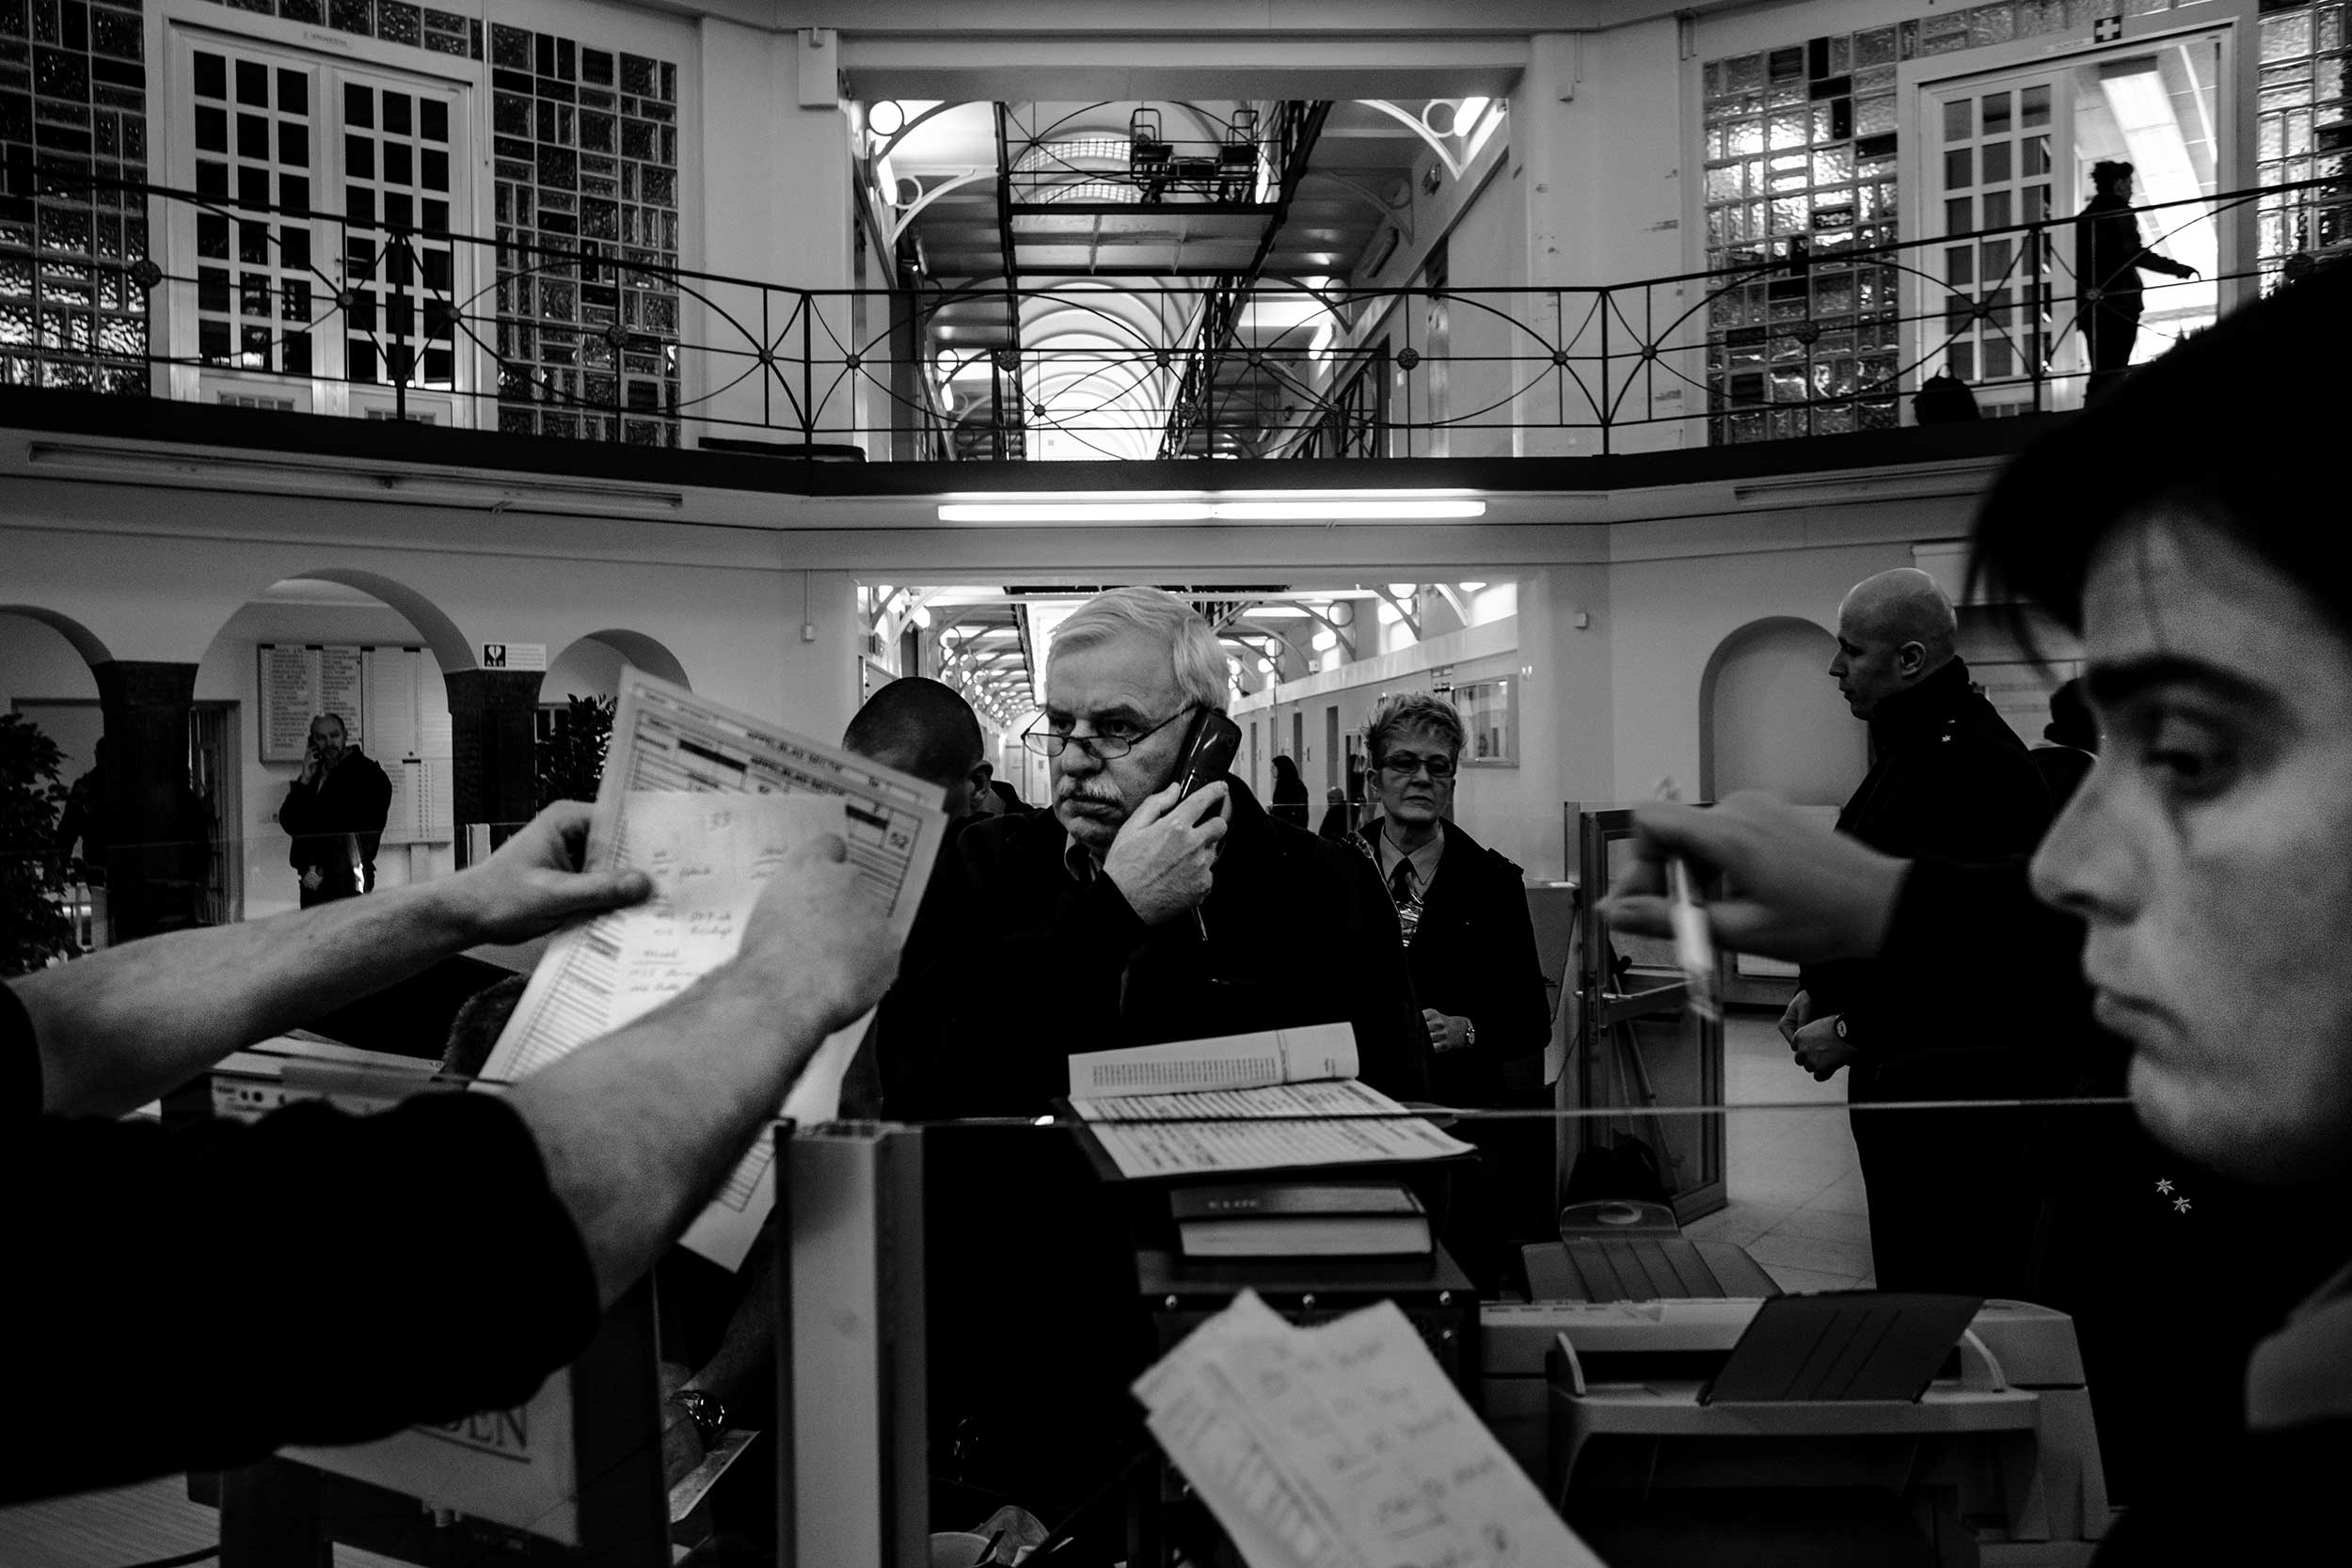 Guards Inside the main security hall. Ghent, December 2013.